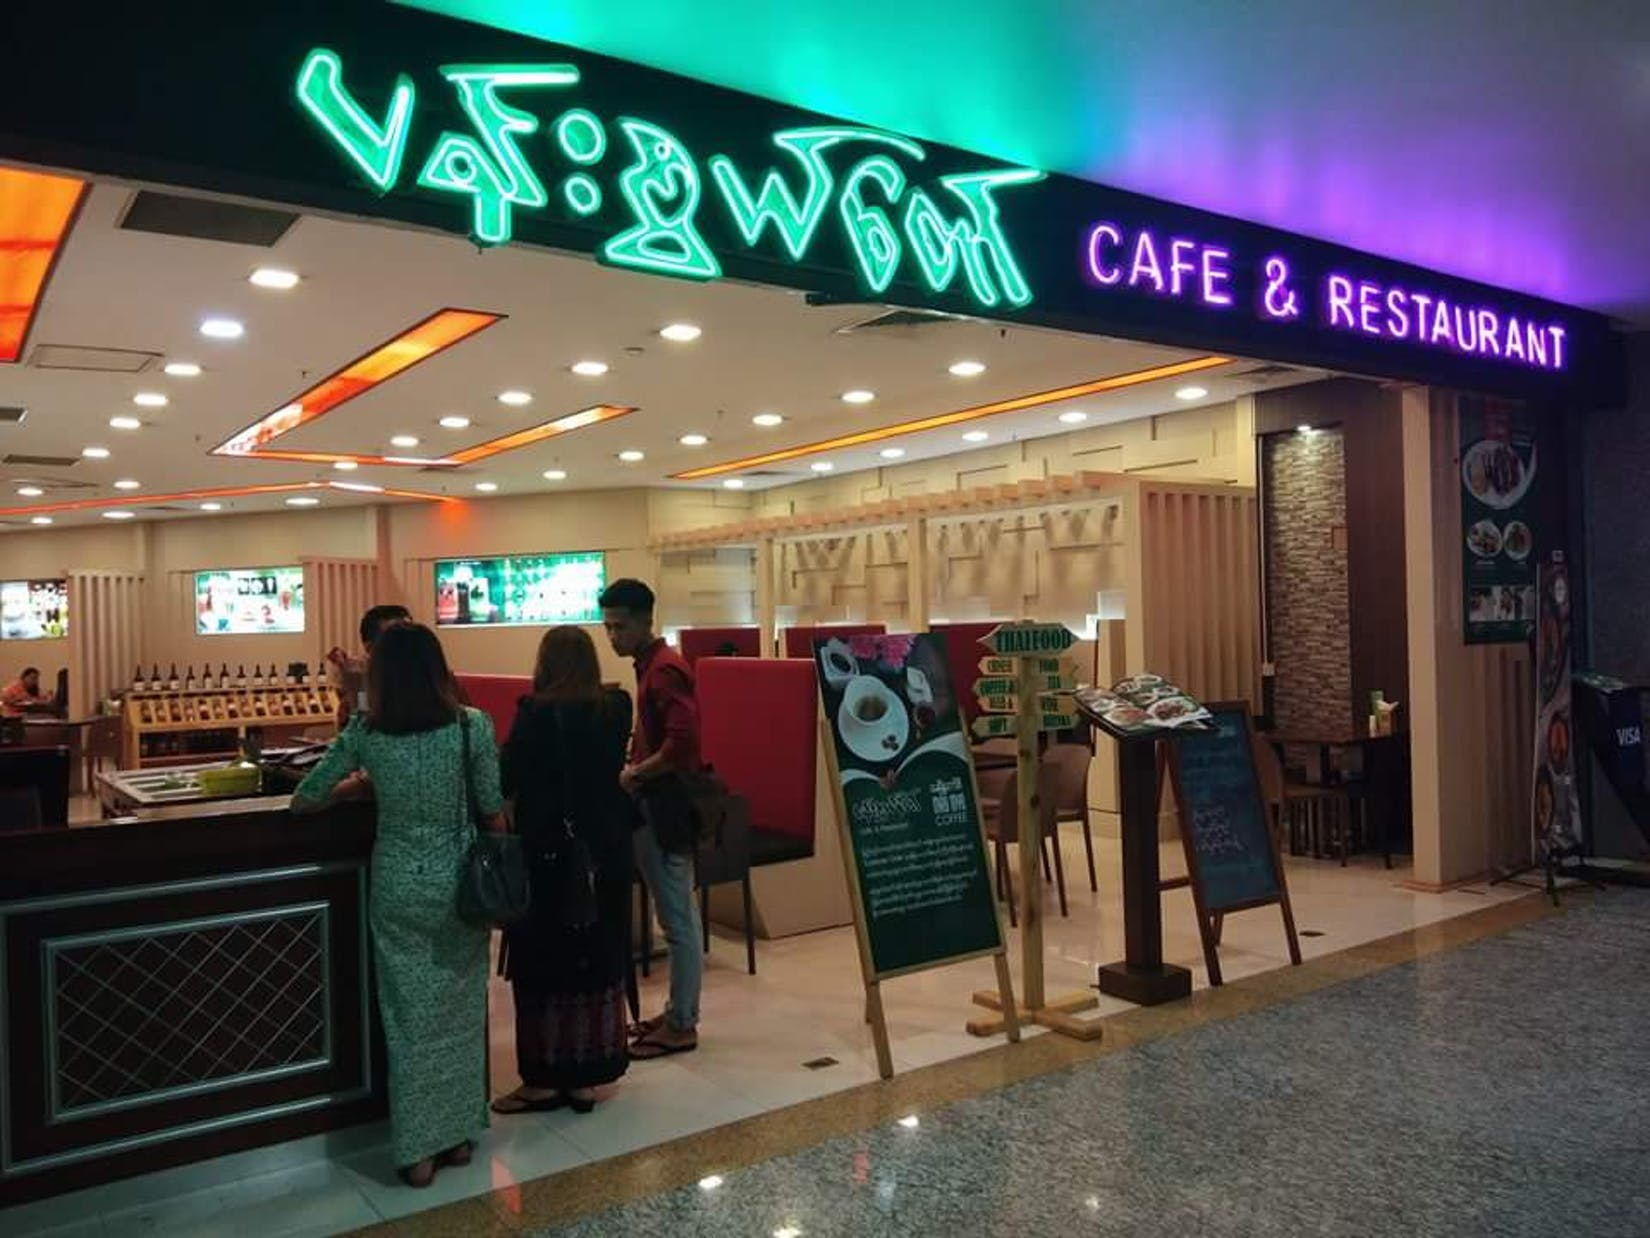 Pansweltaw cafe & restaurant ( Junction Square )   yathar